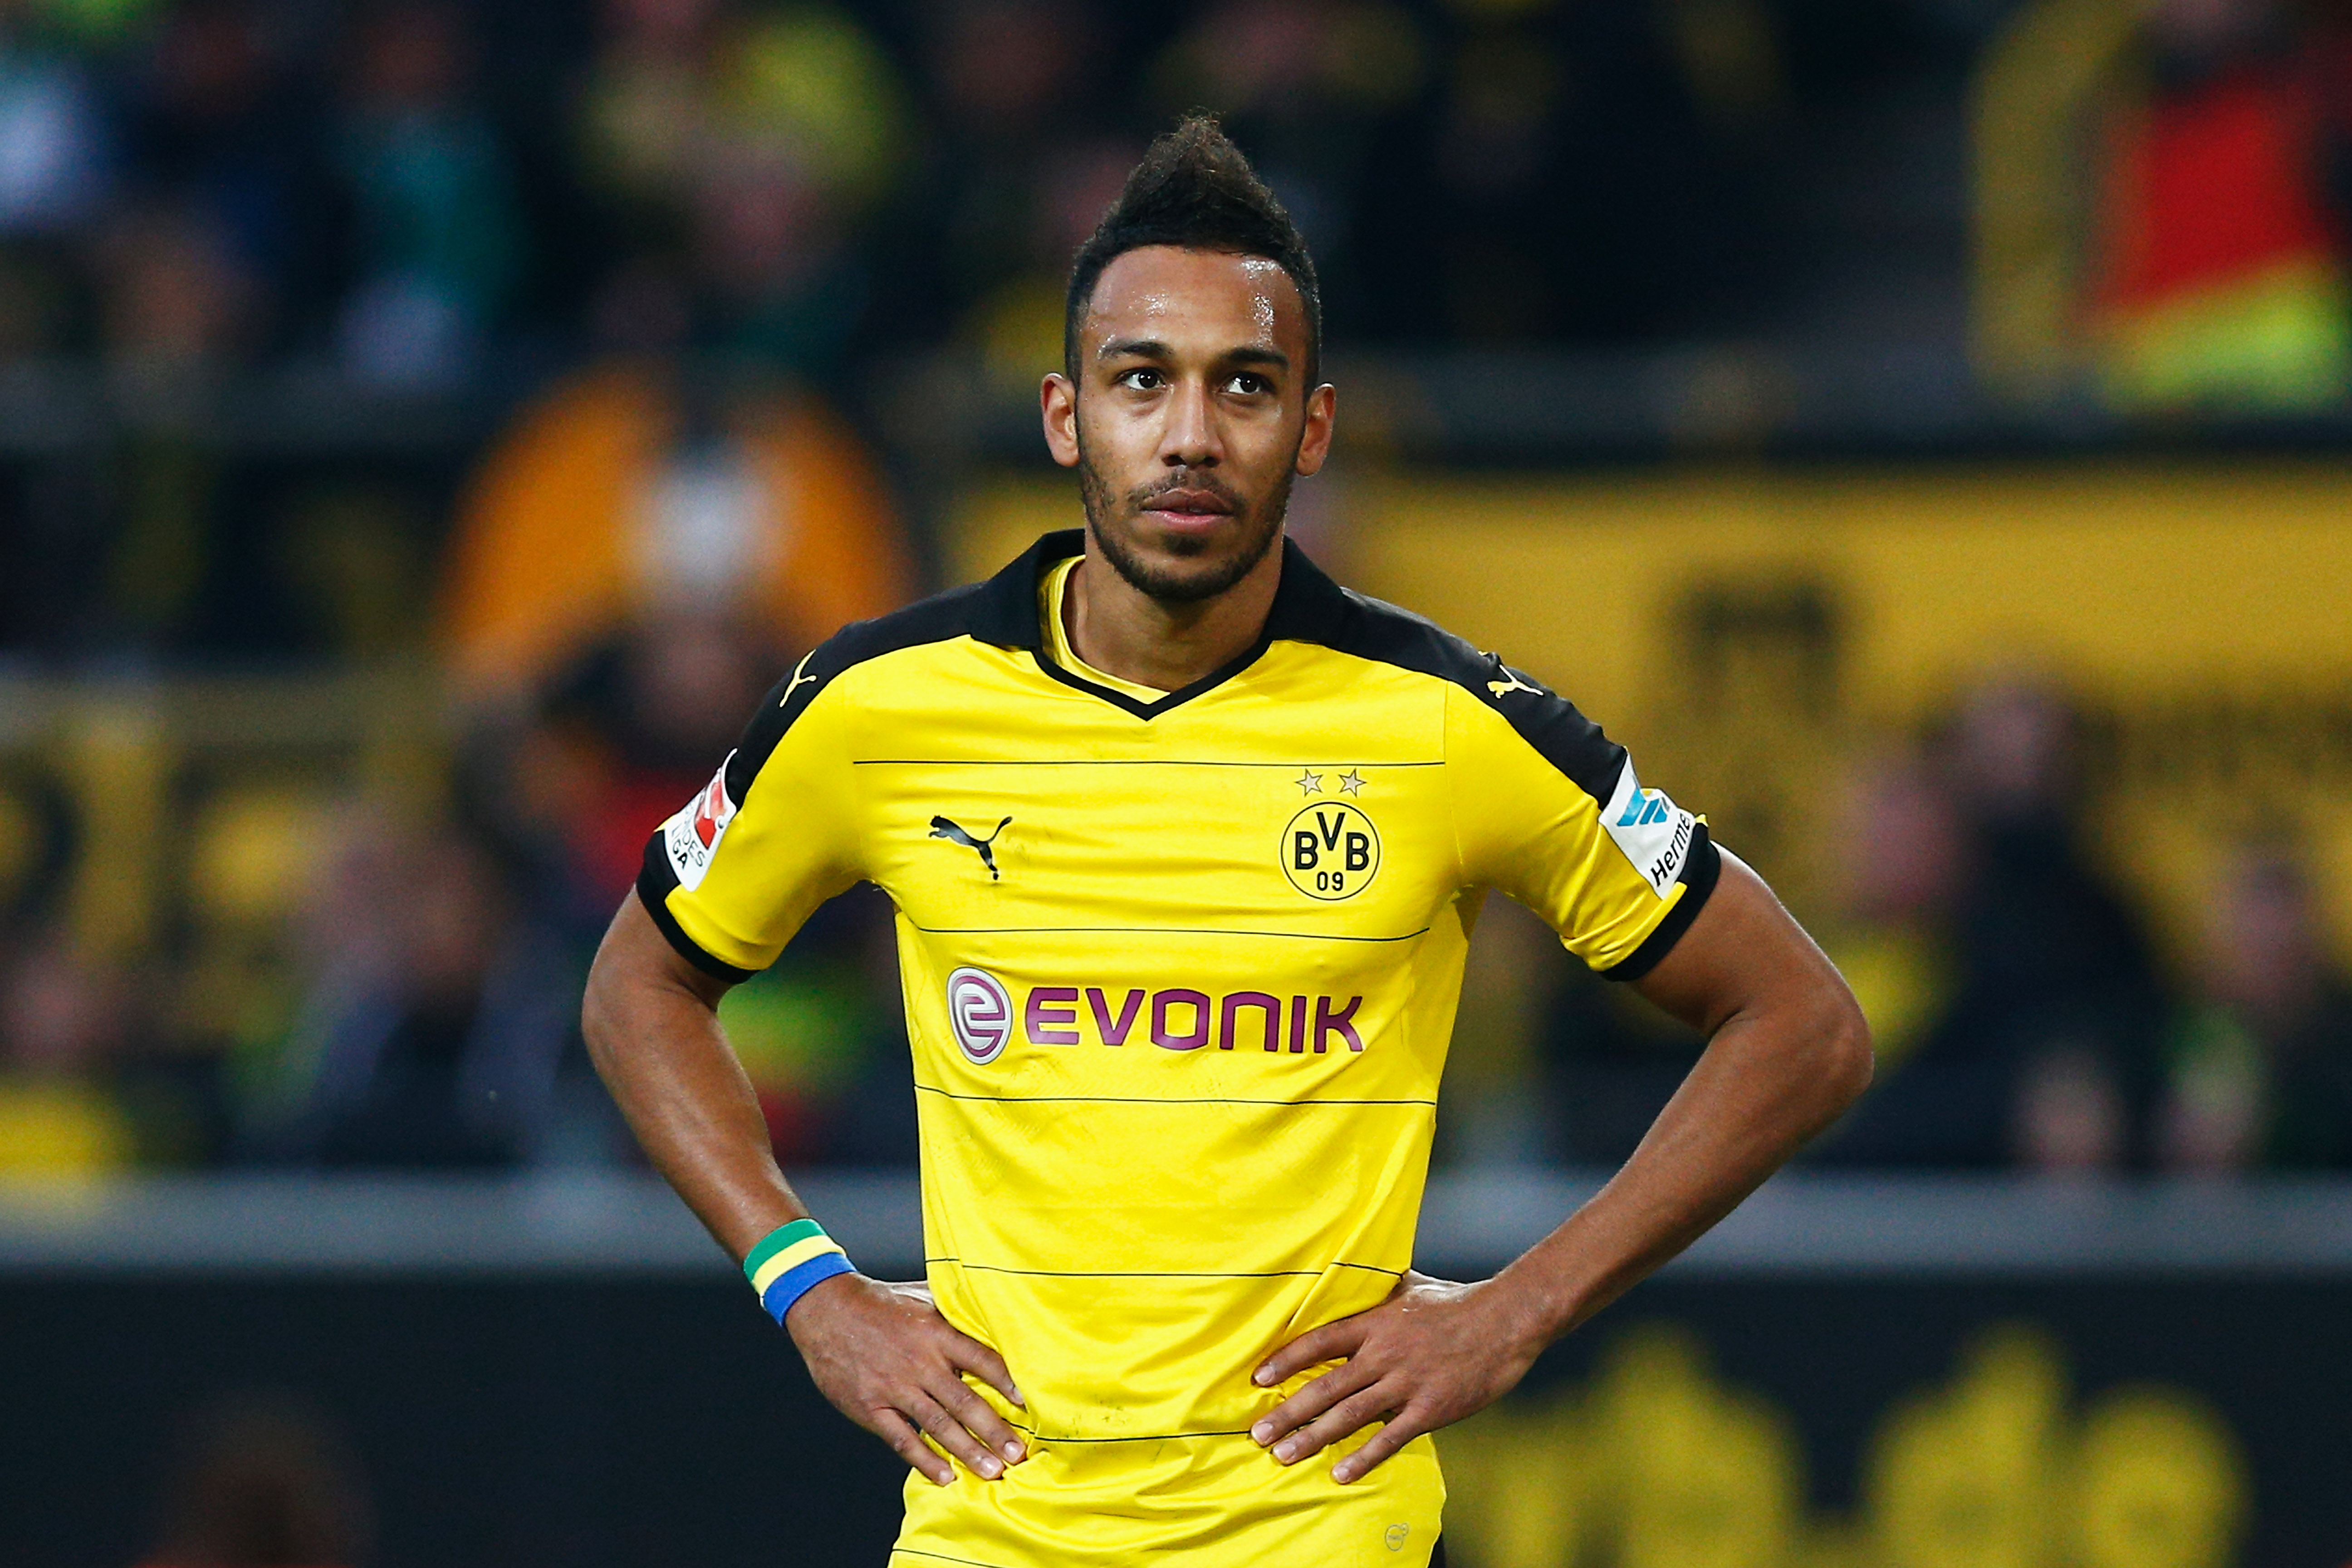 Pierre-Emerick Aubameyang would give Manchester City the best attack in the Premier League